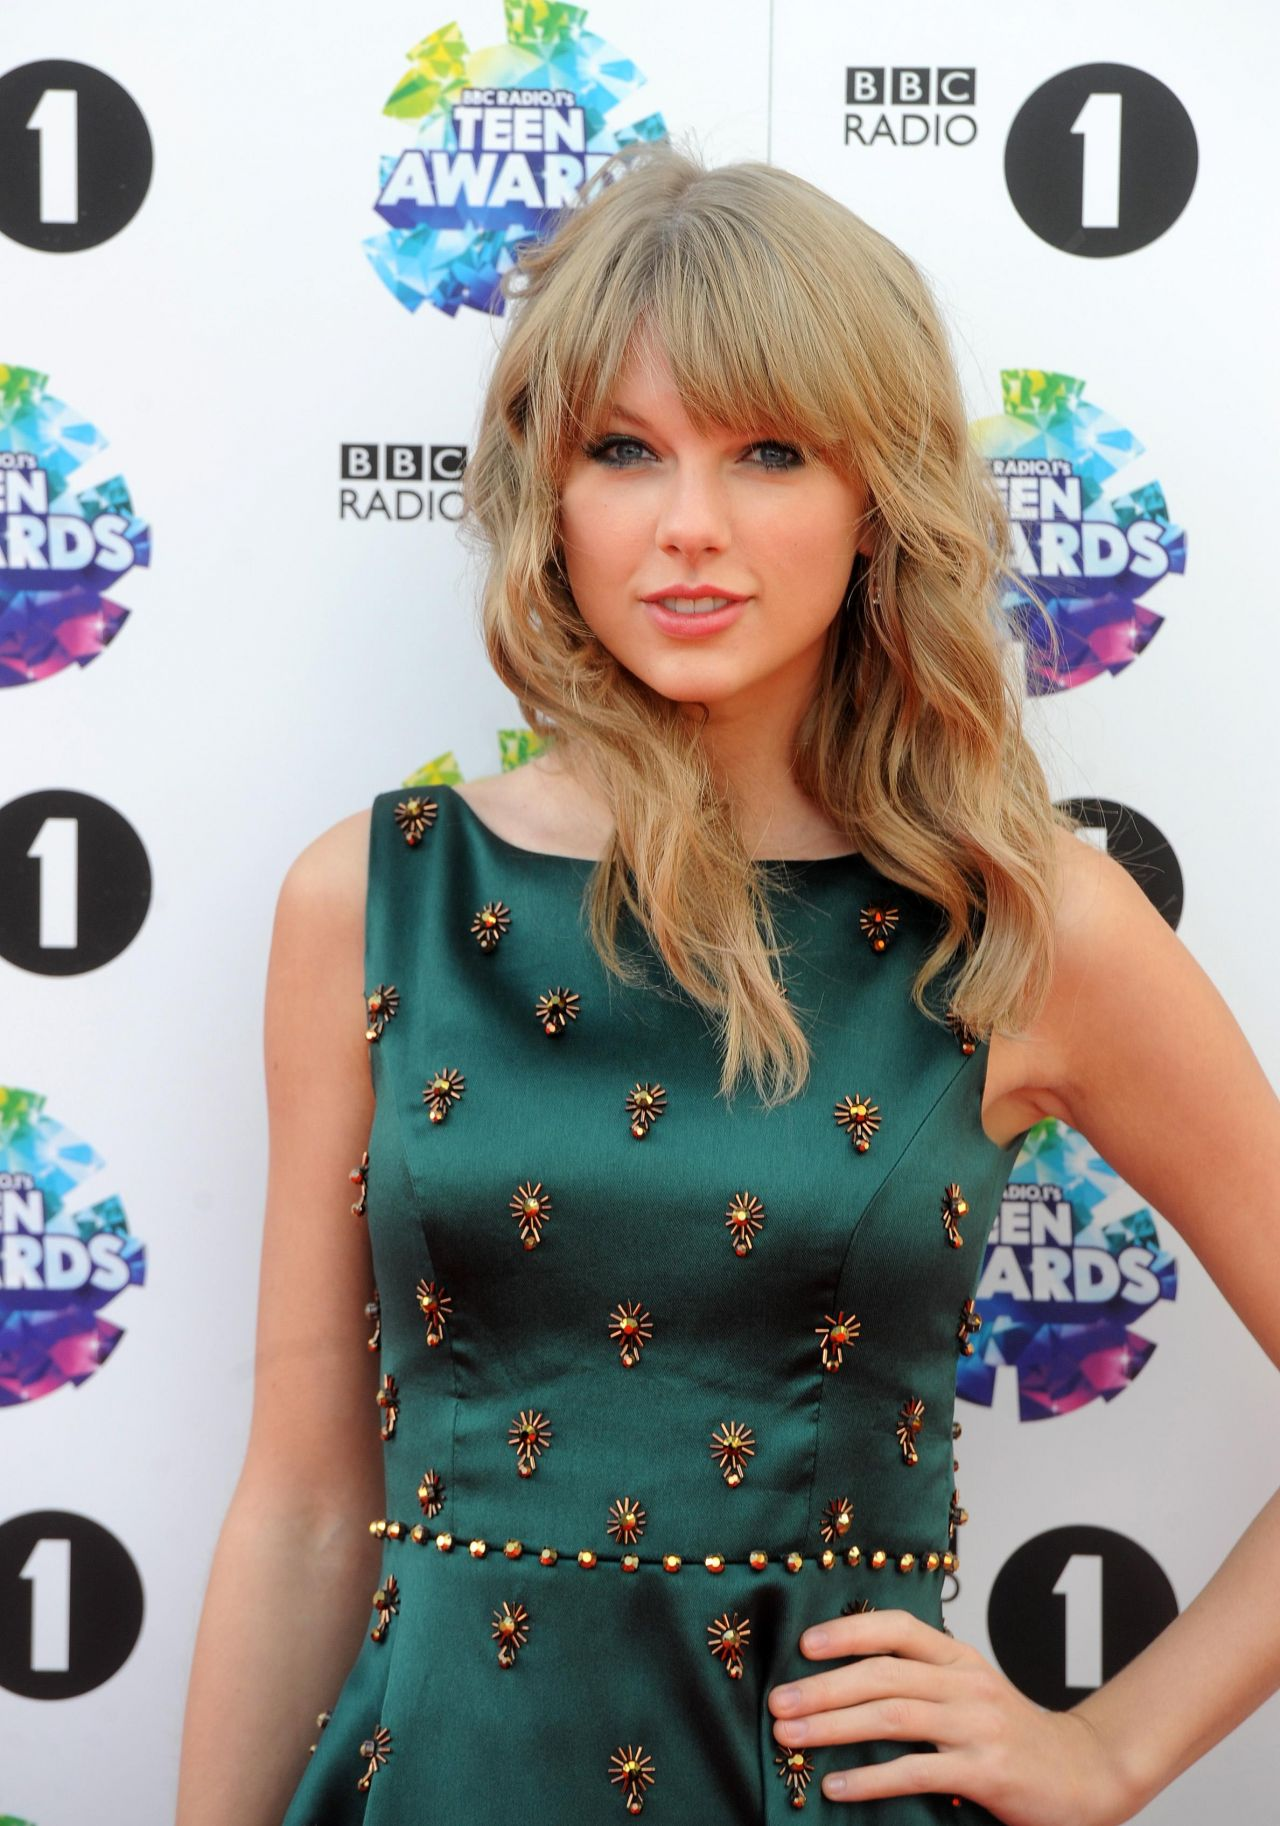 Taylor Swift On Red Carpet - Bbc Radio 1 Teen Awards In London-8795